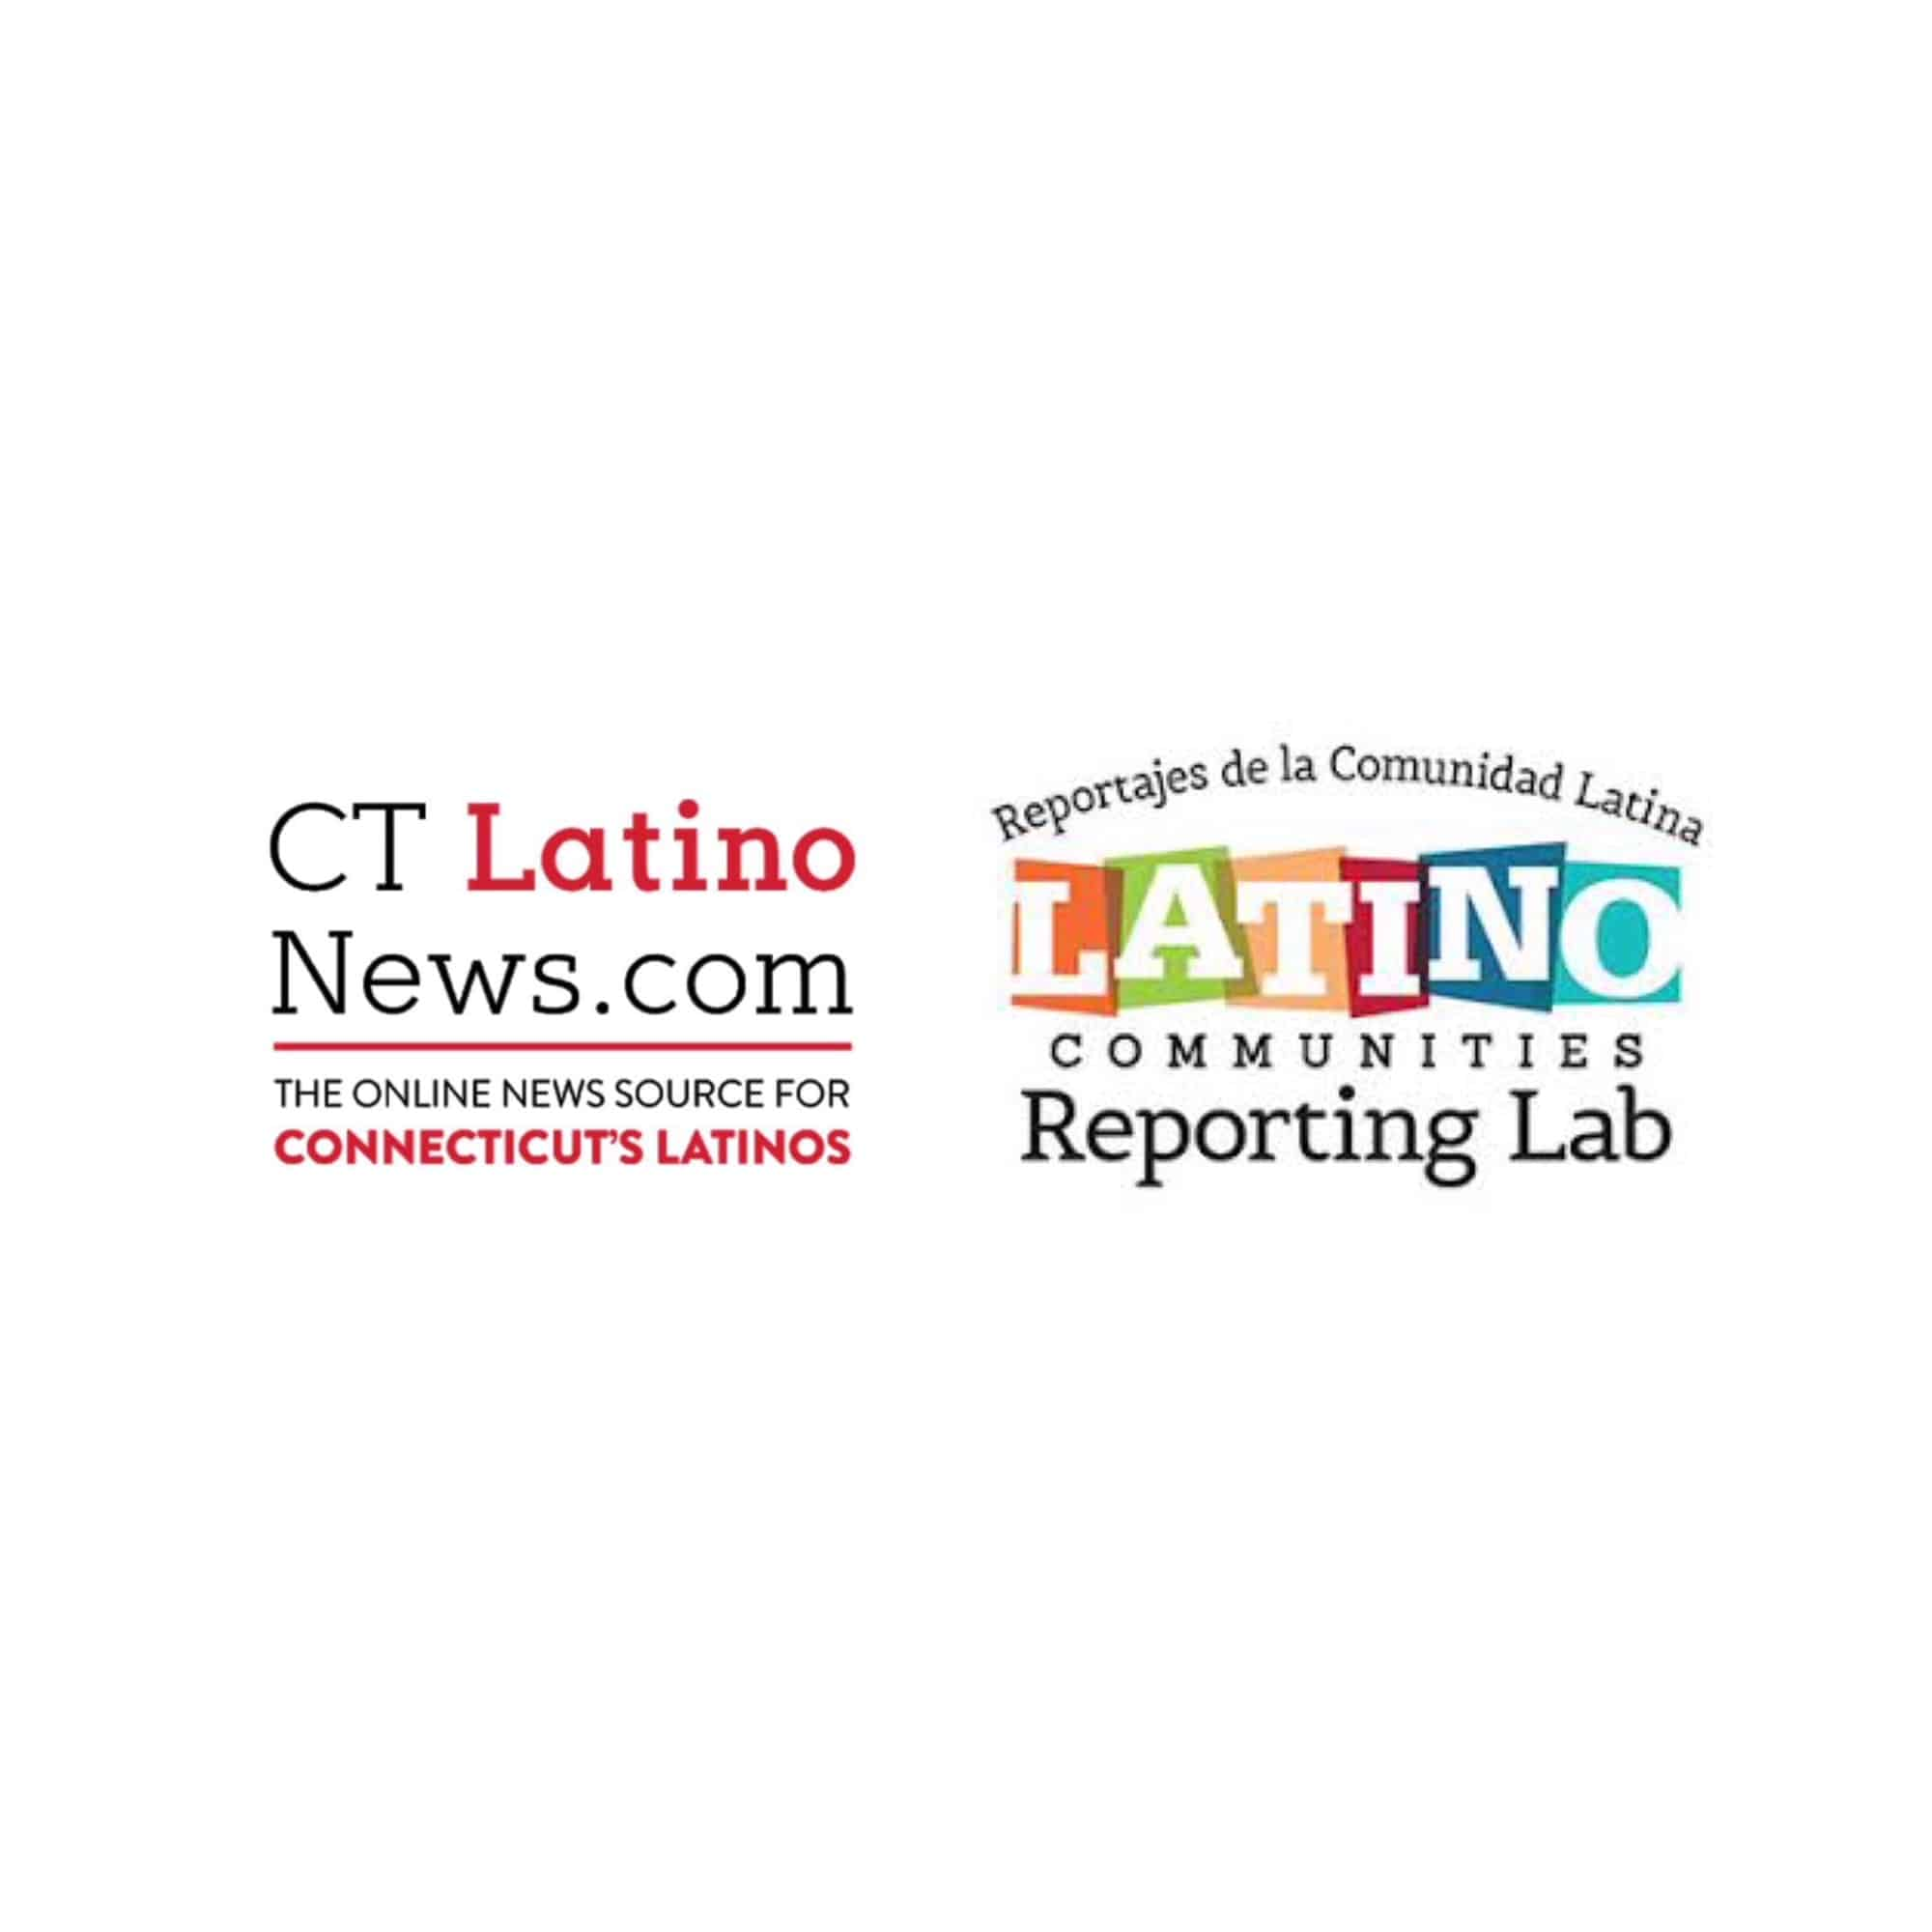 ANNOUNCEMENT: CTLN partners with the Latino Communities Reporting Lab